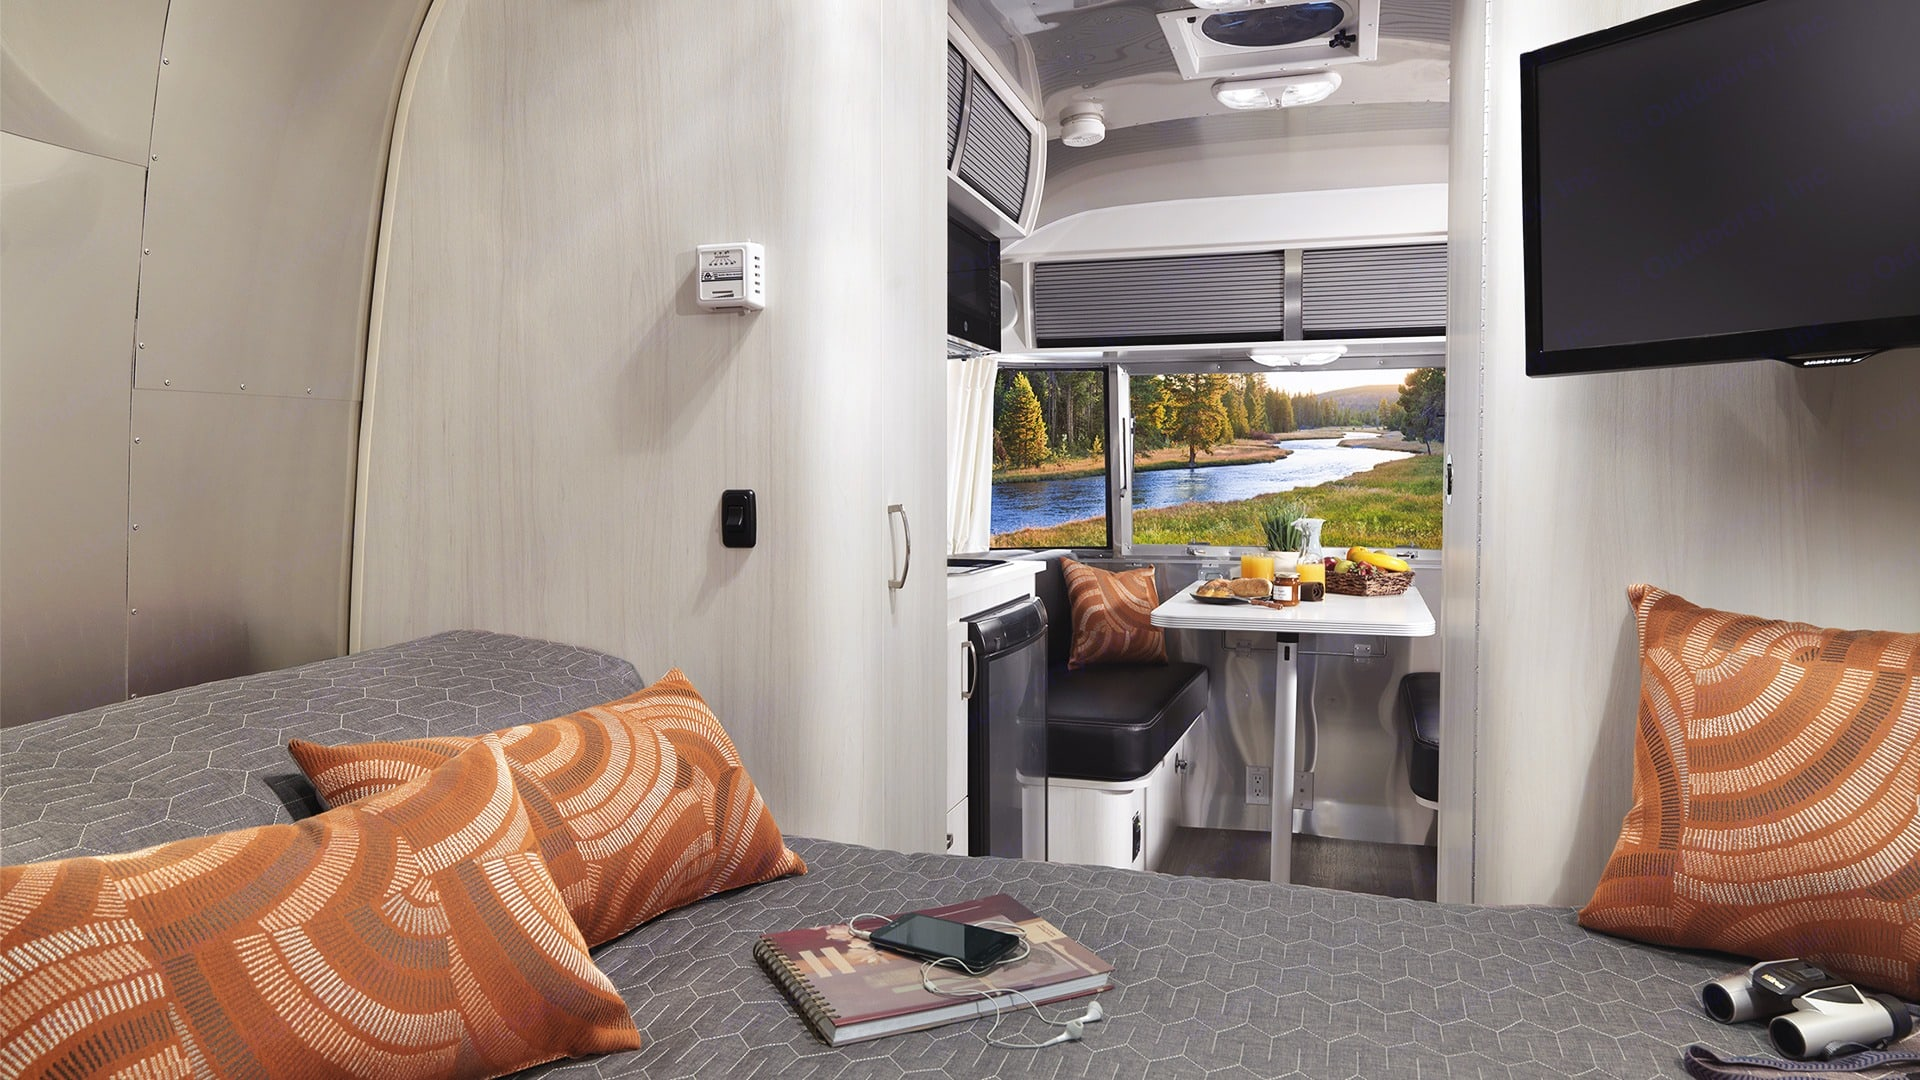 Sleep, watch a movie or relive the day's adventures in the cozy, pillow top memory foam mattress bed. Airstream Sport 2019